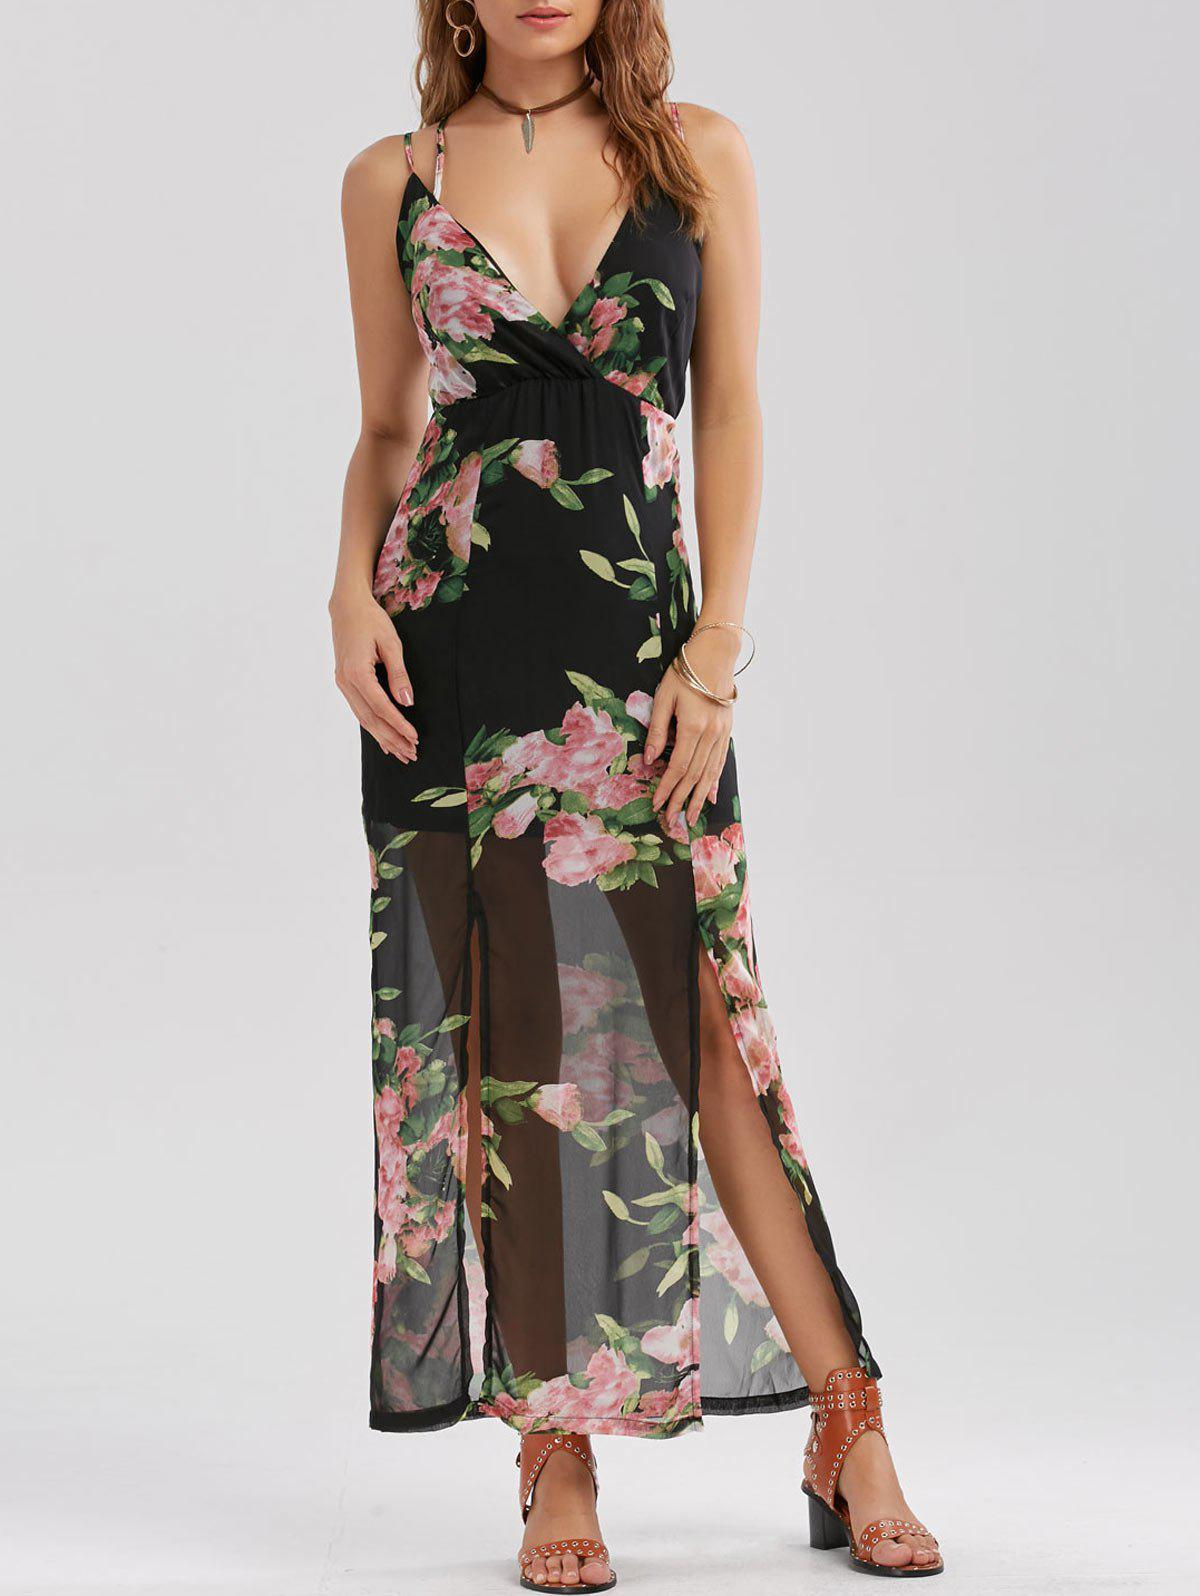 Floral Print High Slit Chiffon Maxi Dress - BLACK L